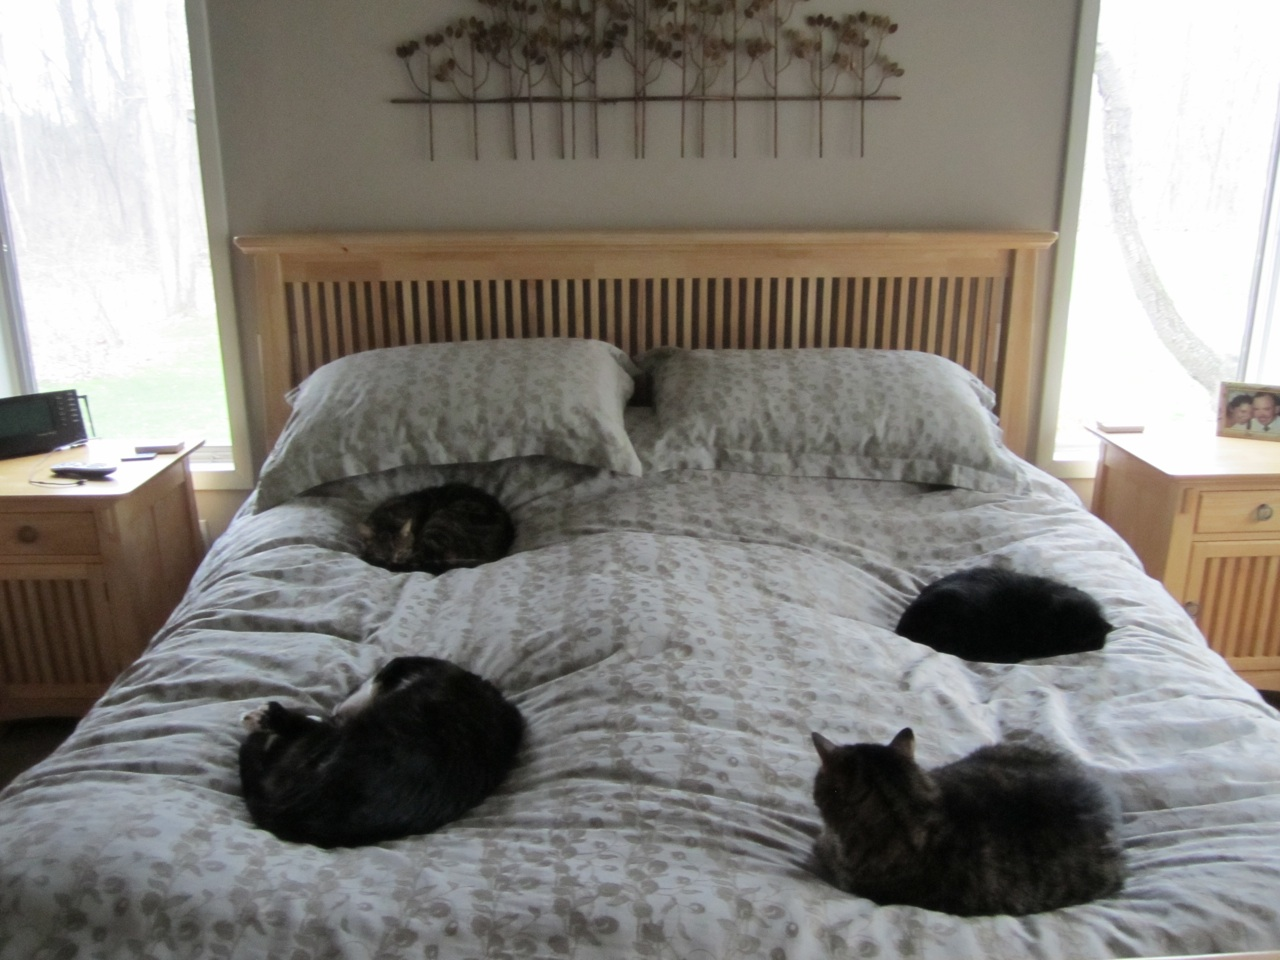 All Four Kitties Sound Asleep On The Bed